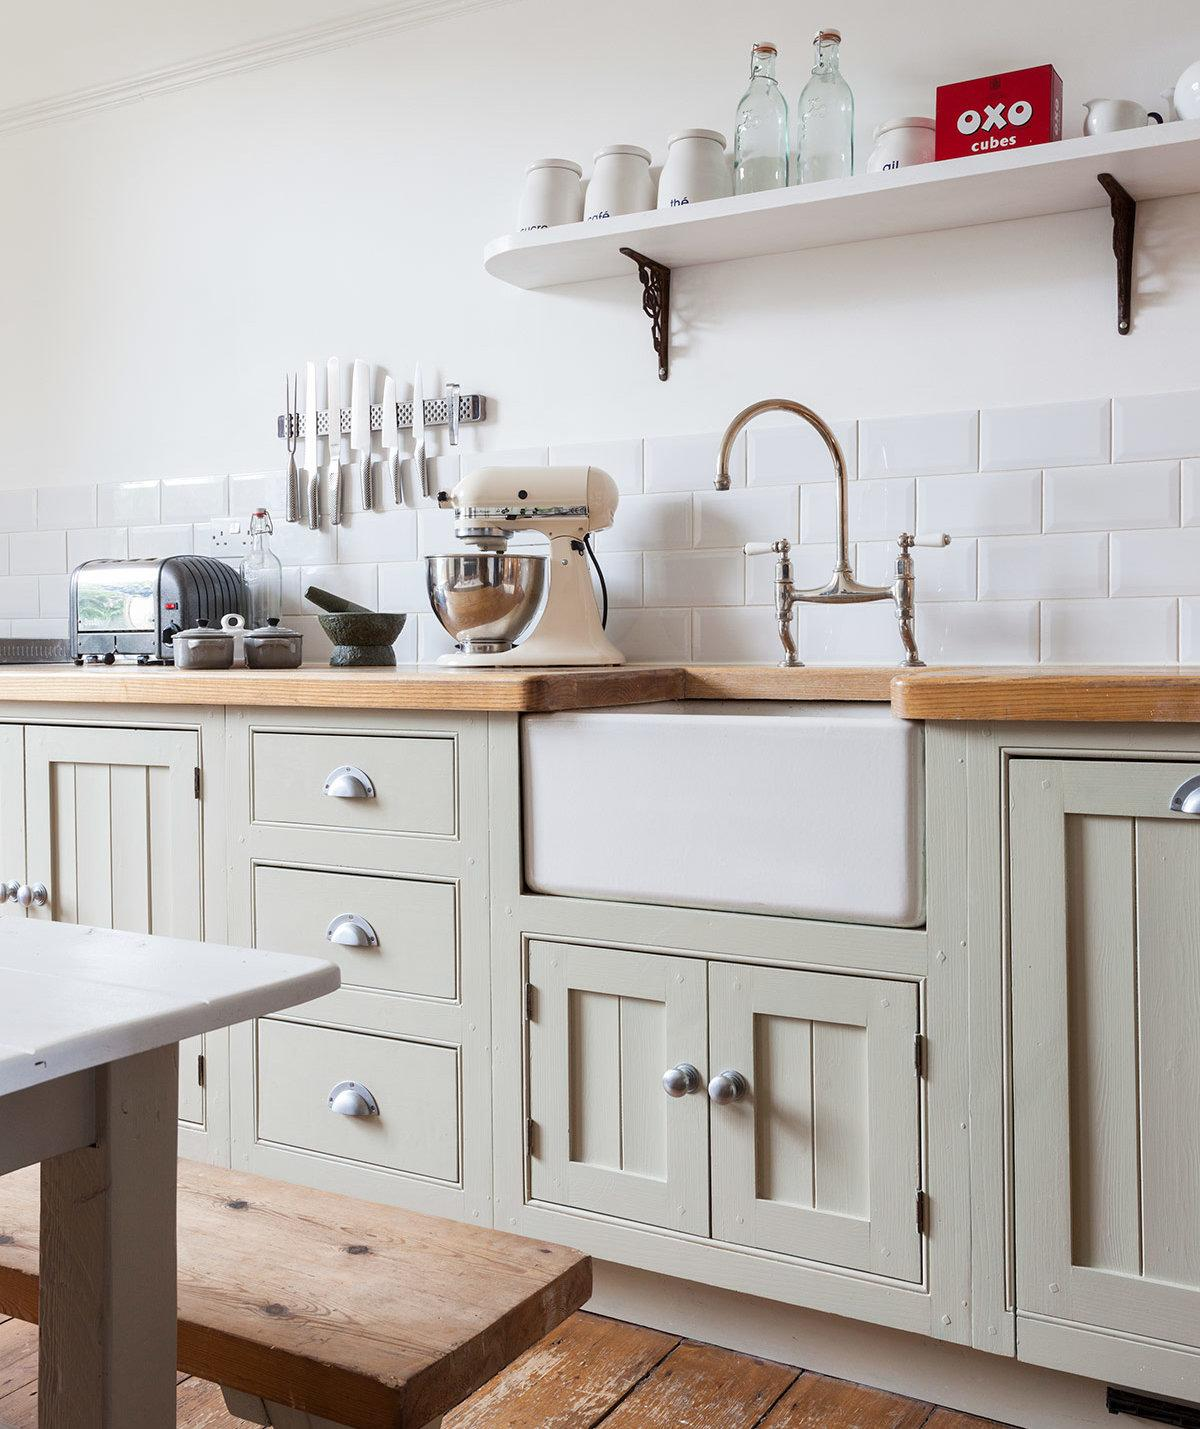 Houz Kitchens: The Top Kitchen Trends Of 2018, According To Houzz